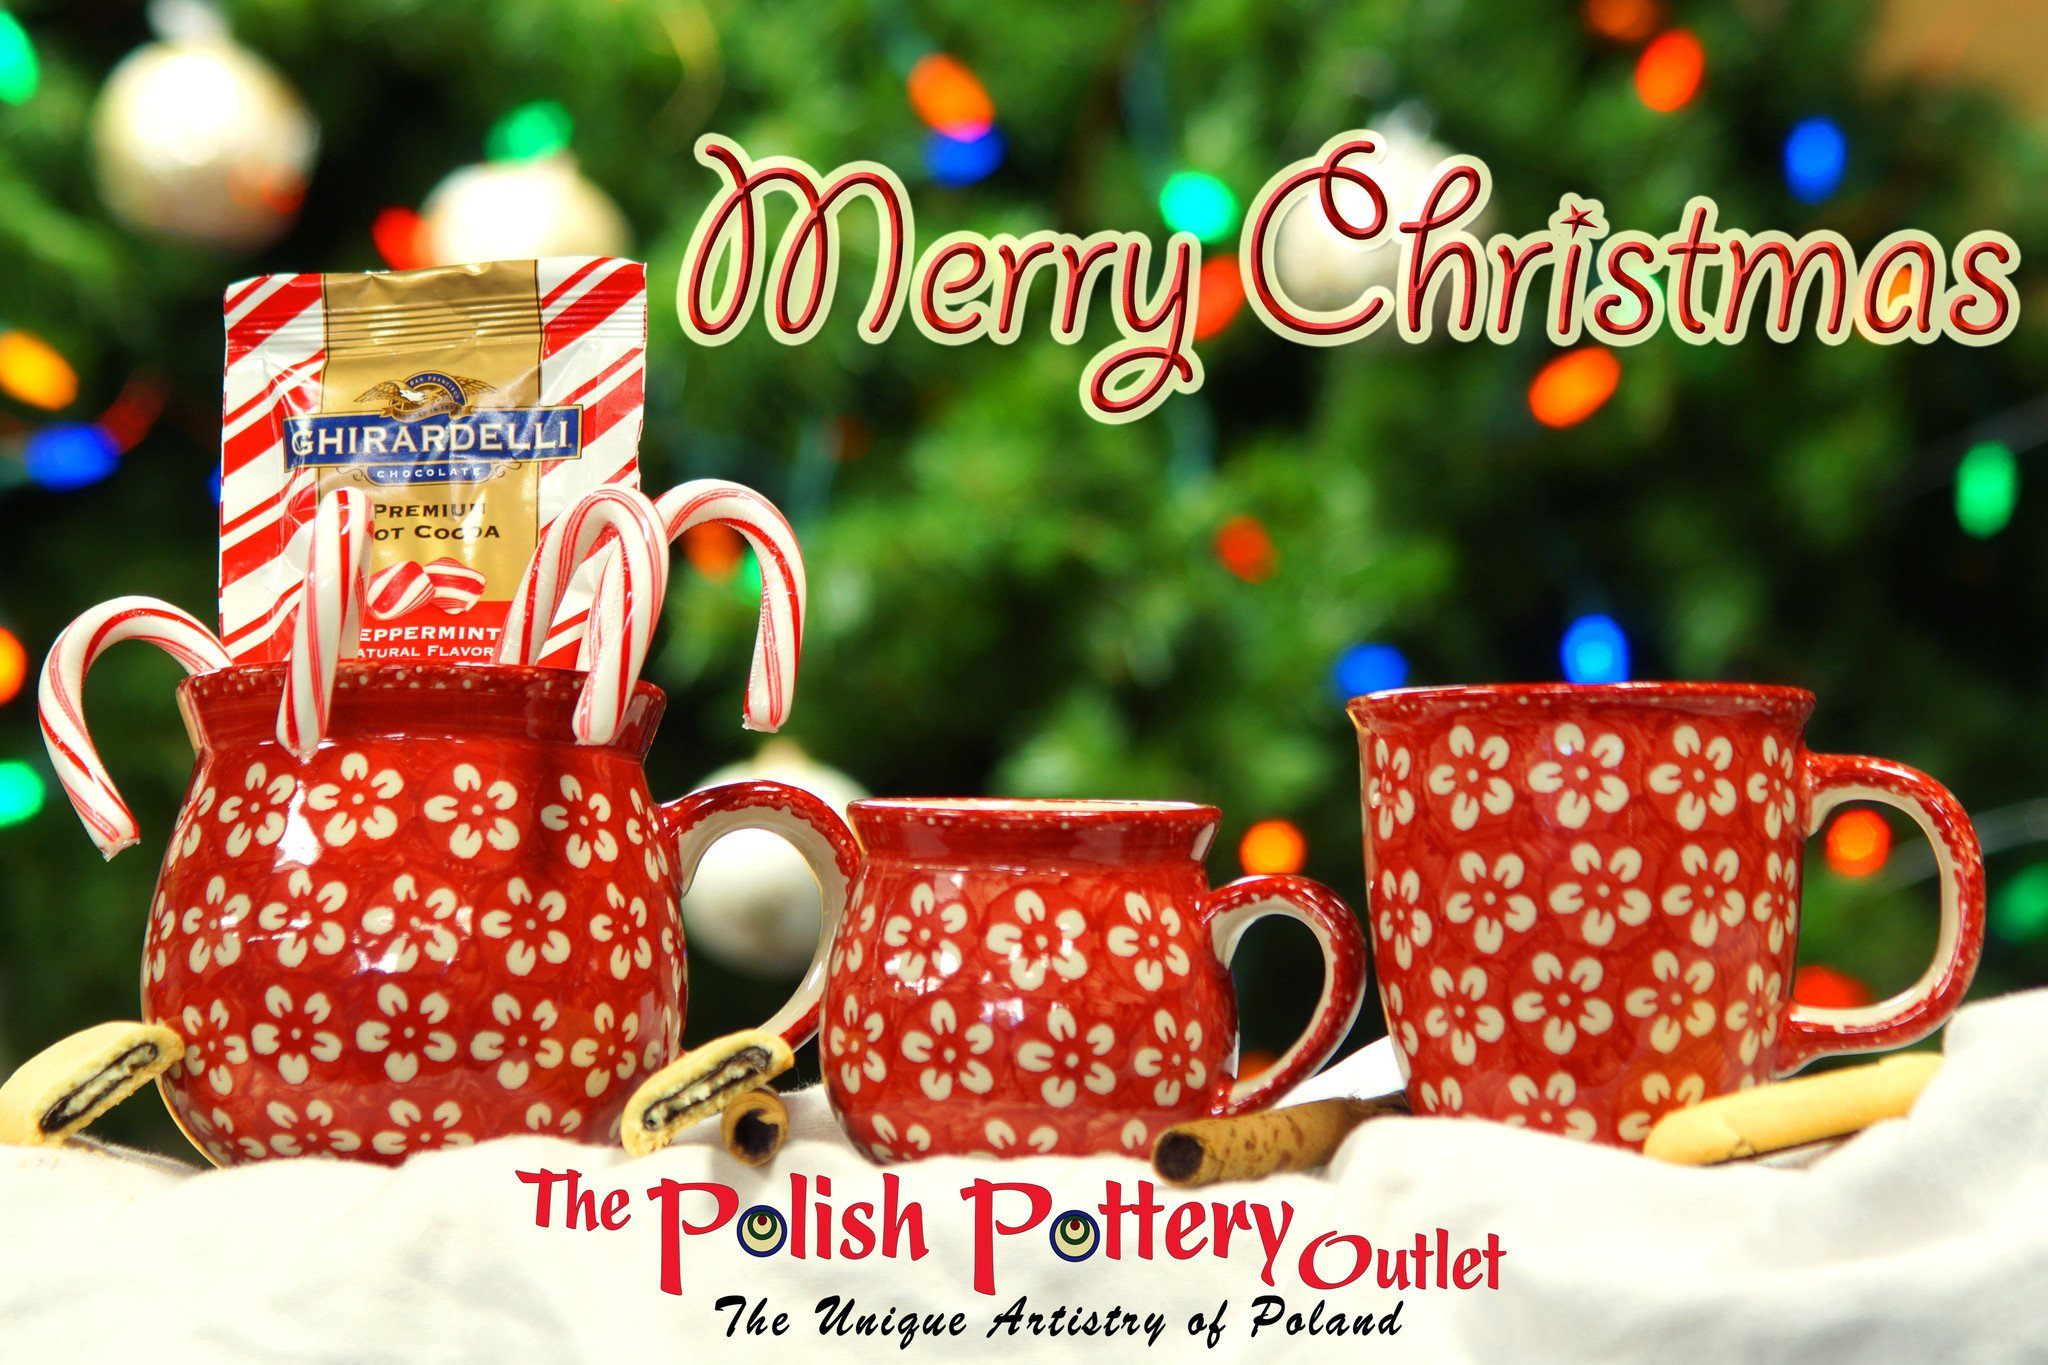 Christmas Gift Card - The Polish Pottery Outlet